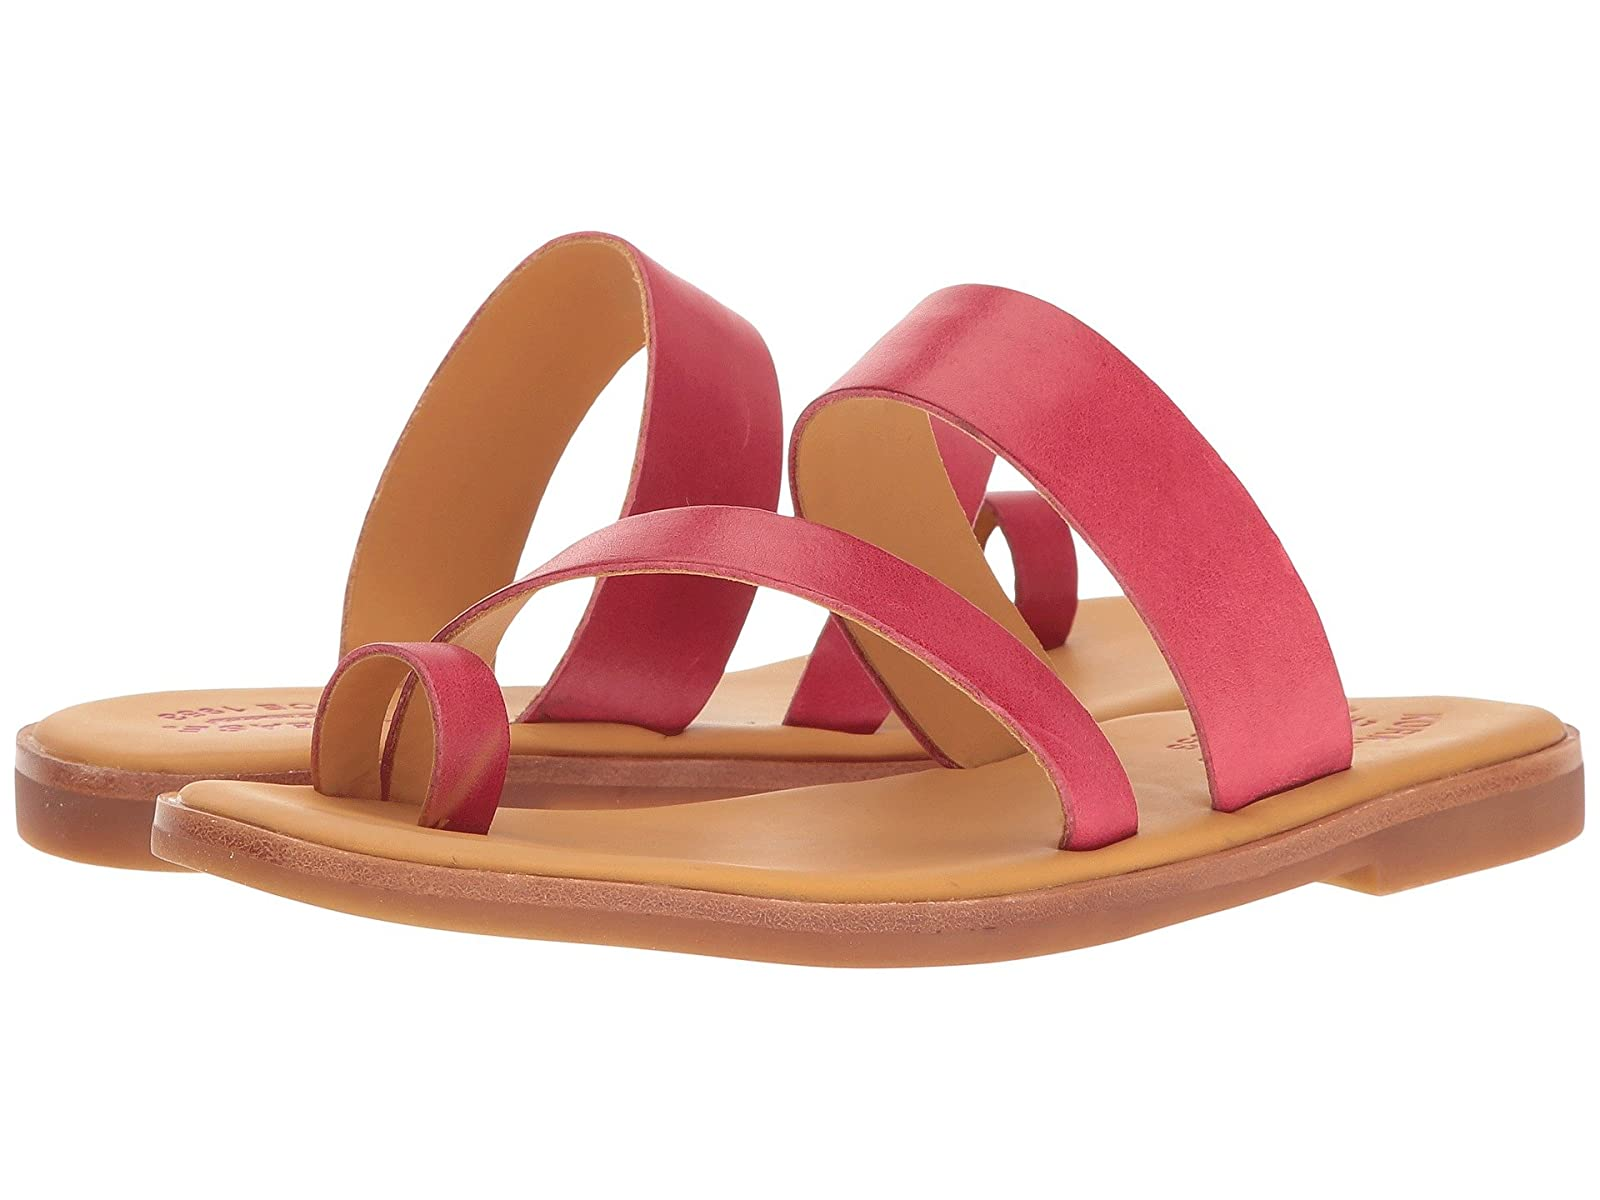 Kork-Ease PineCheap and distinctive eye-catching shoes